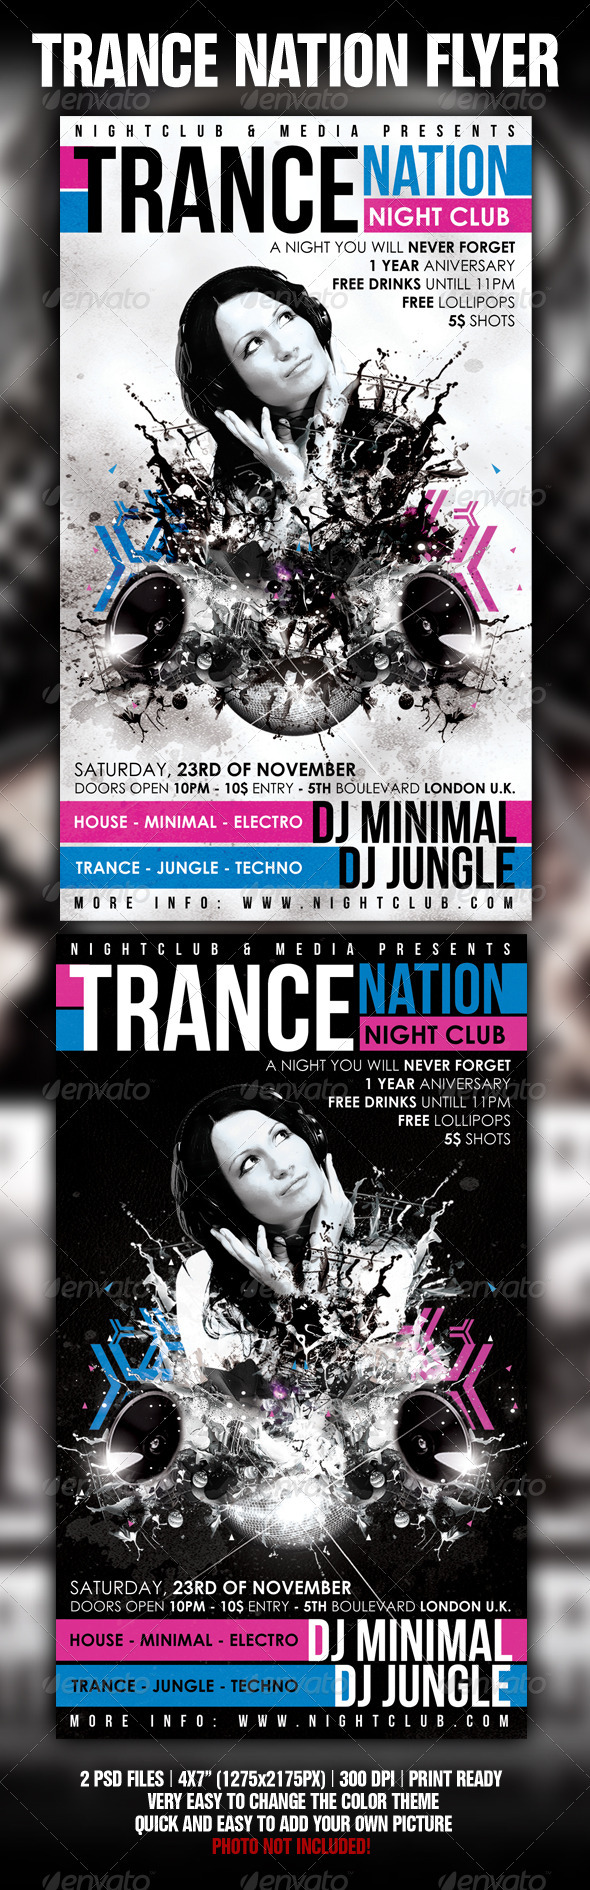 Trance Flyer Template - Clubs & Parties Events